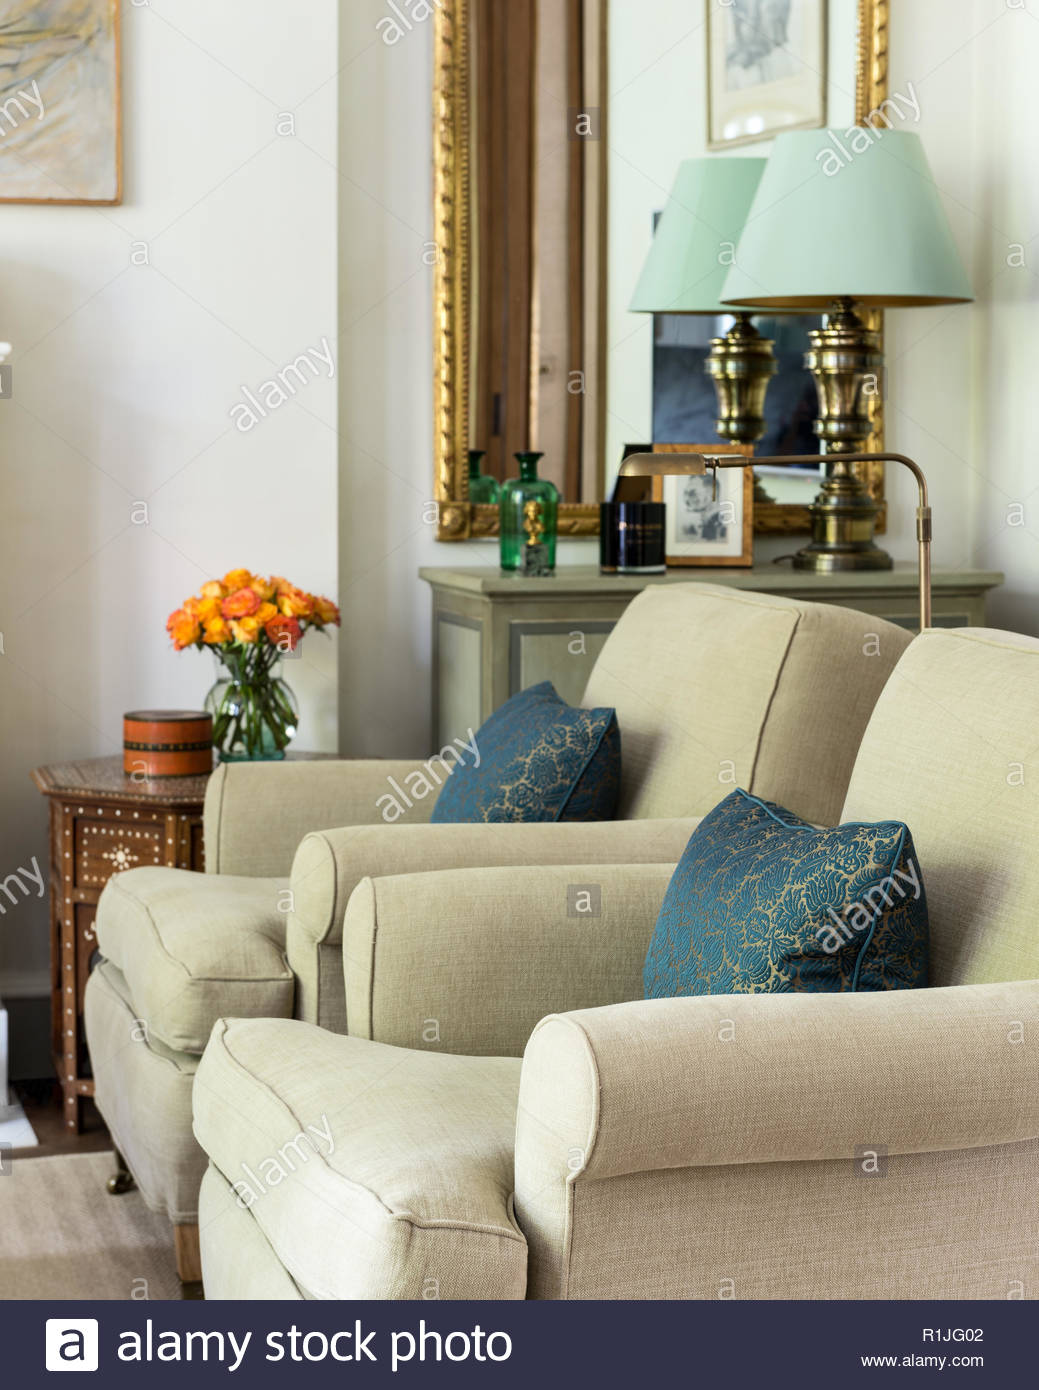 Matching armchairs in country style living room - Stock Image